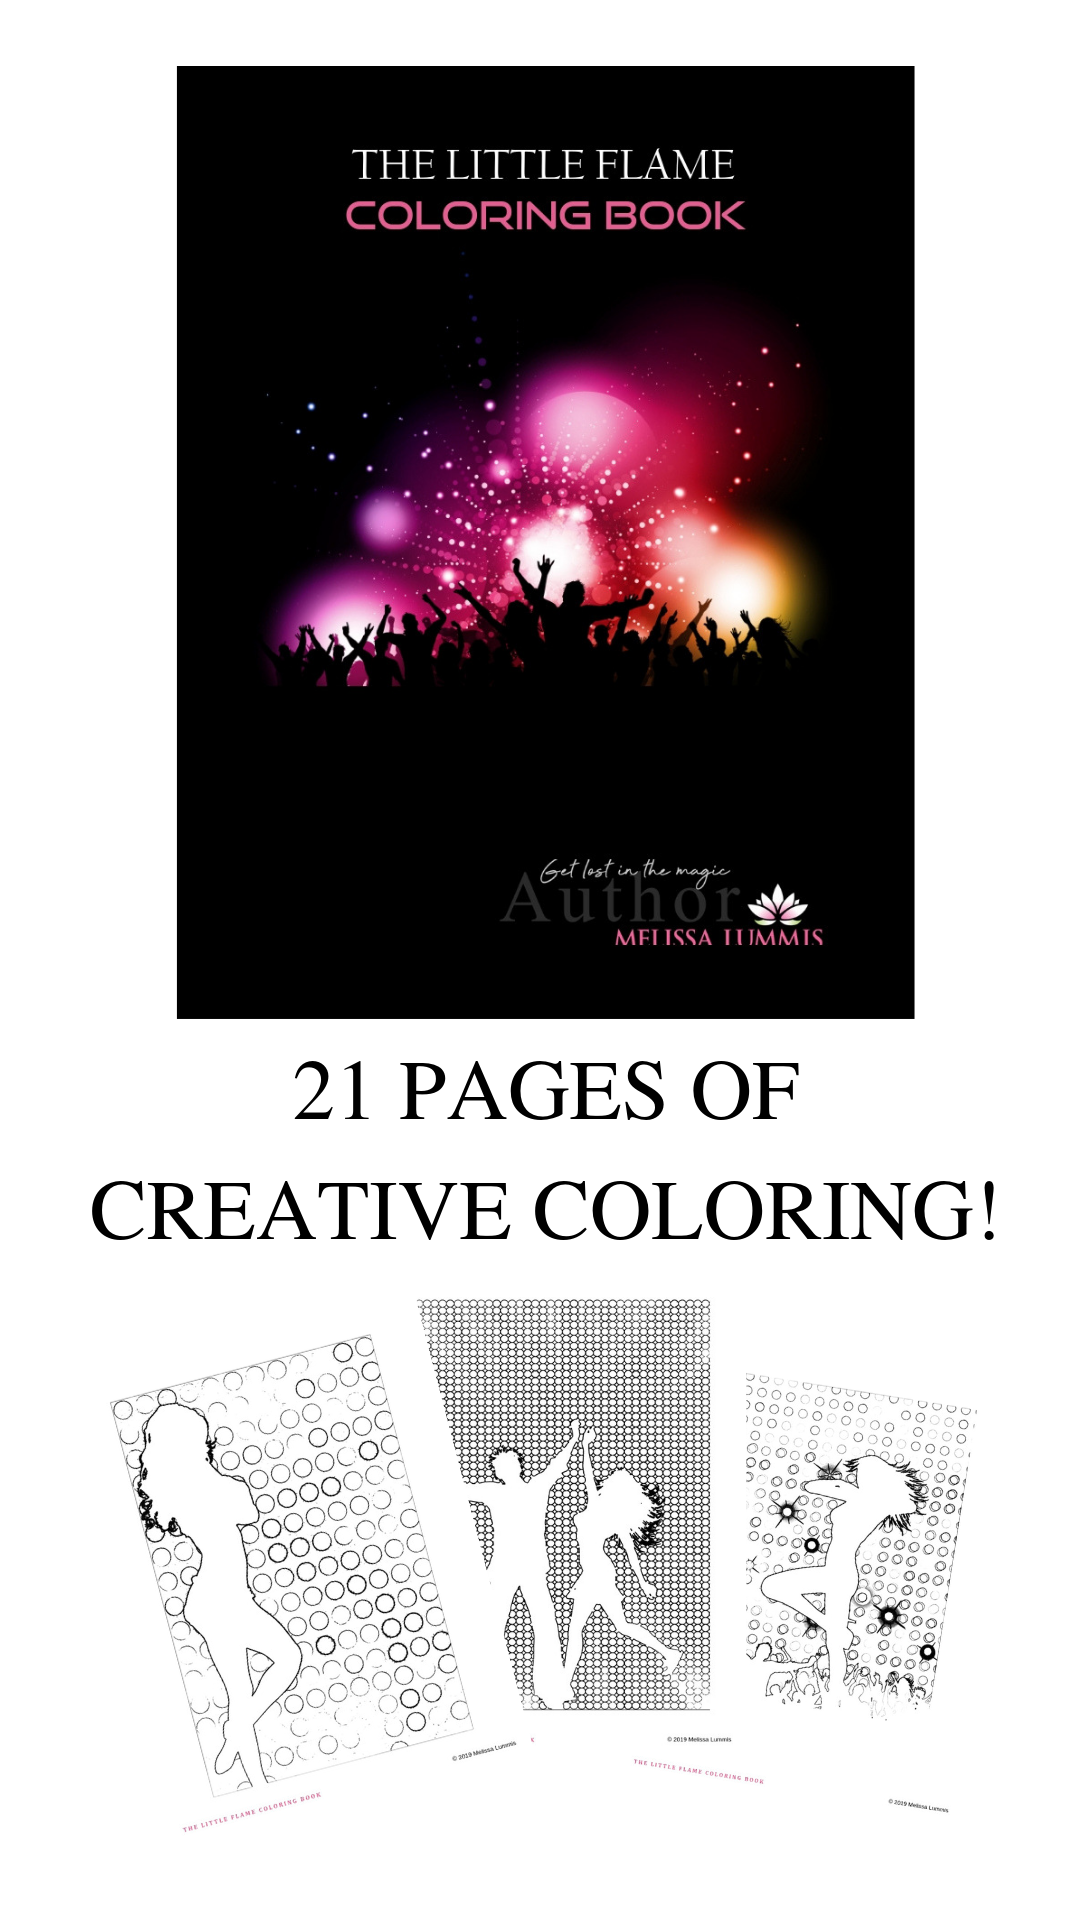 The Little Flame Coloring Book